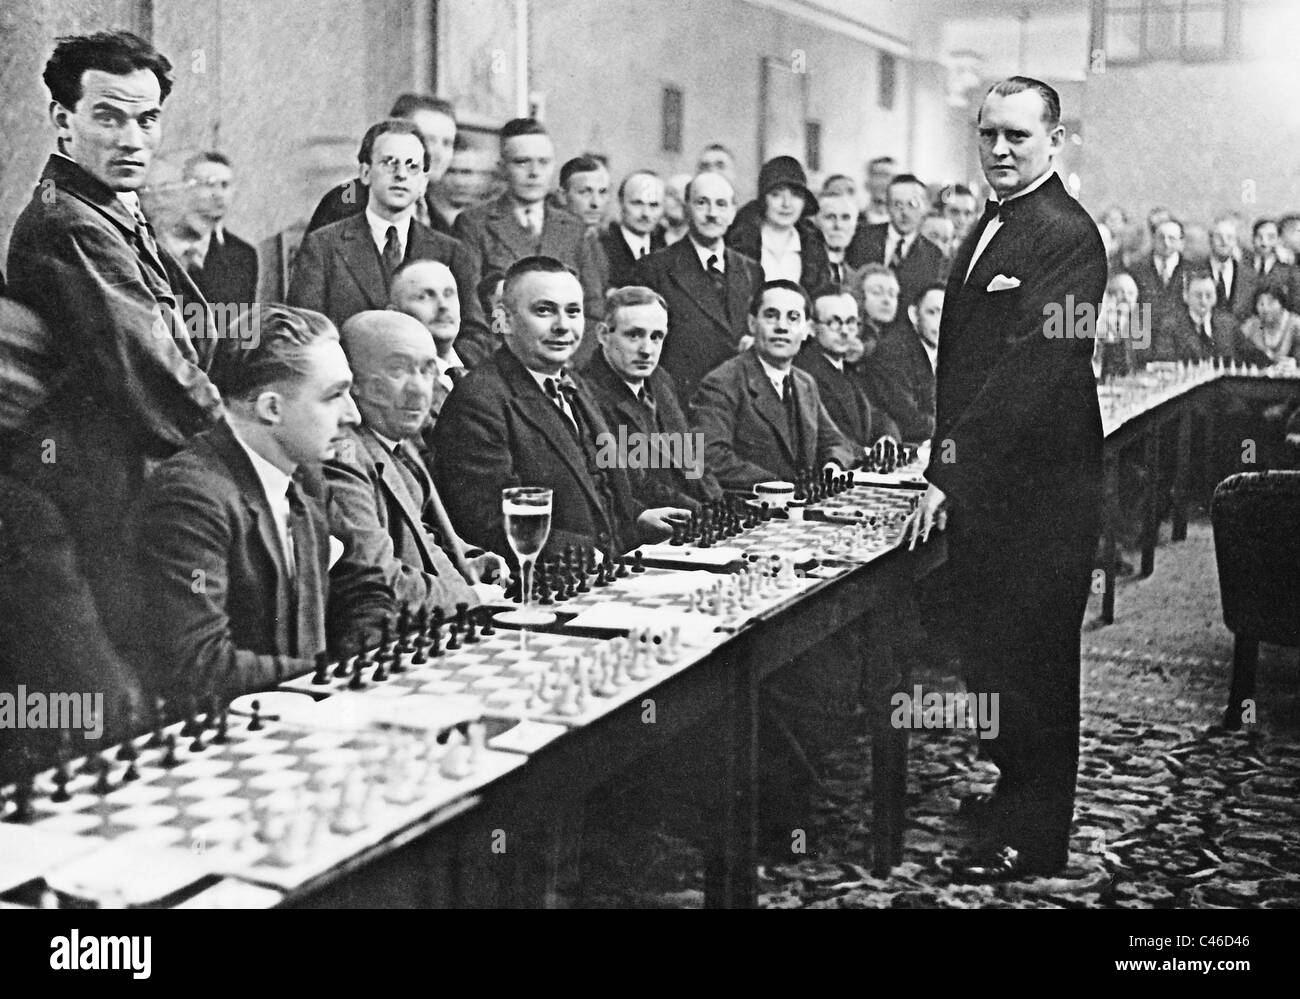 Alexander Alekhine playing simultaneous chess, 1930 - Stock Image